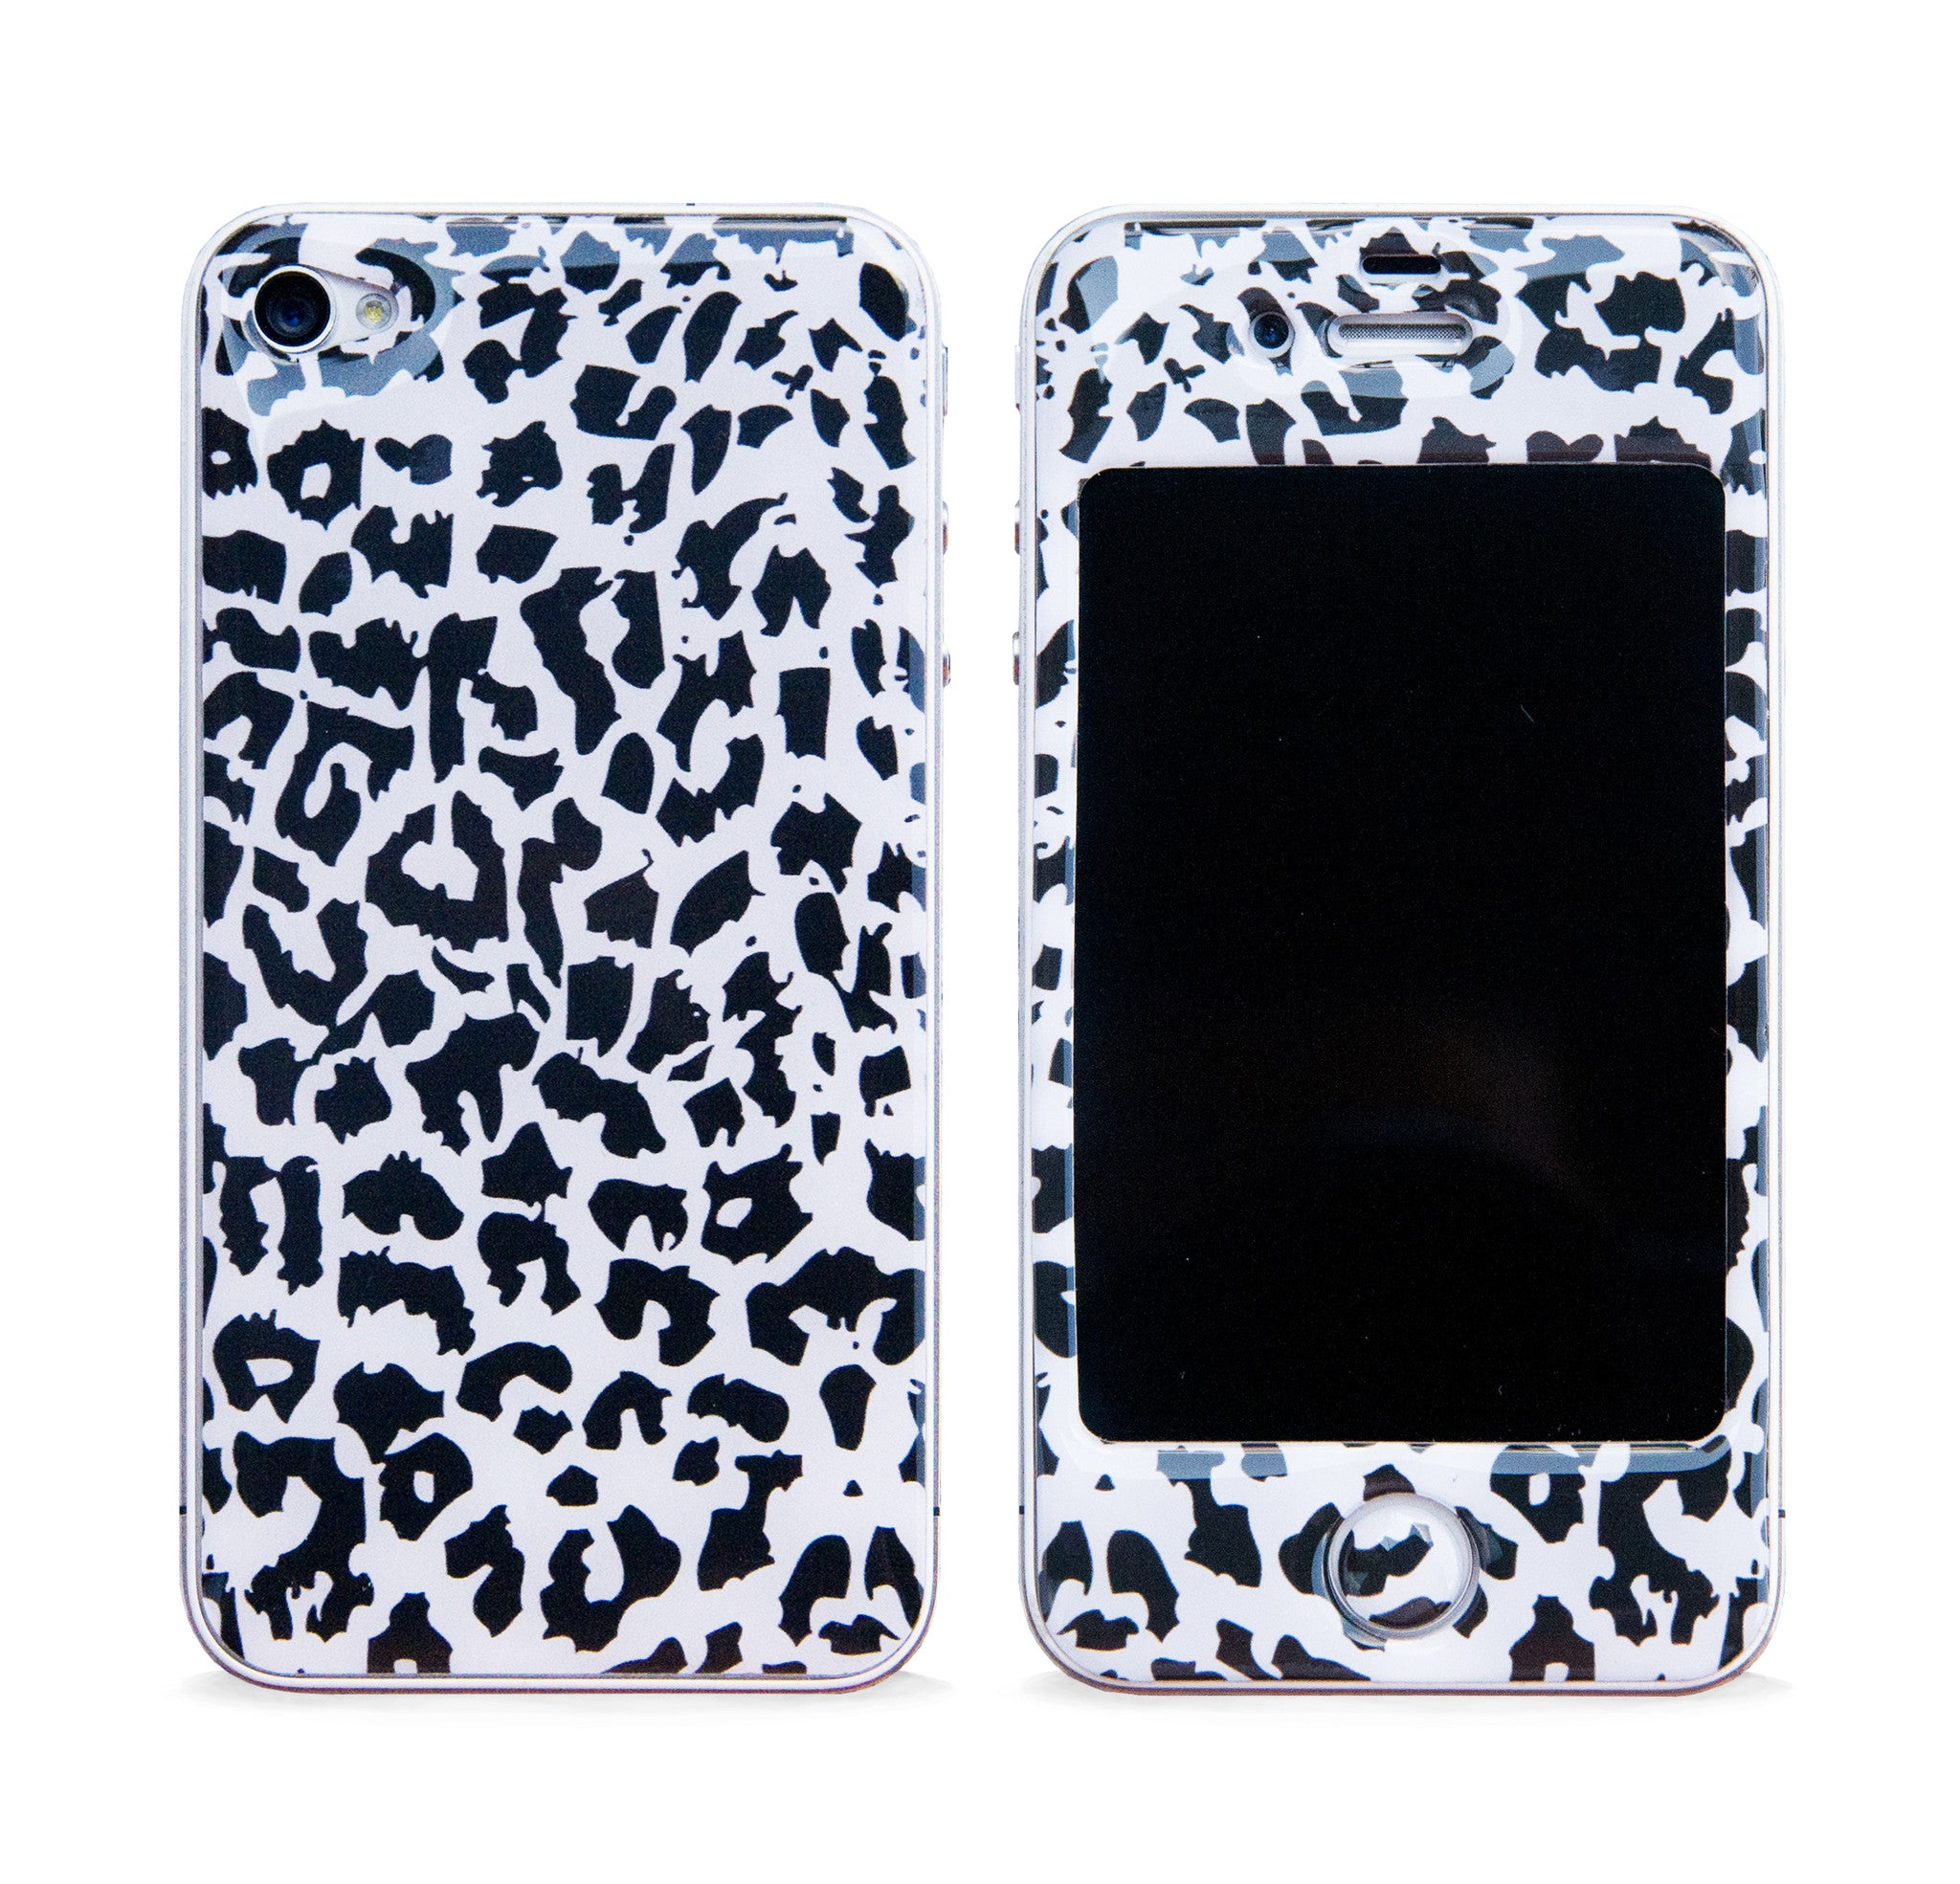 LEOPARD PRINT BLACK 3D GEL SKIN FOR IPHONE 4/4S